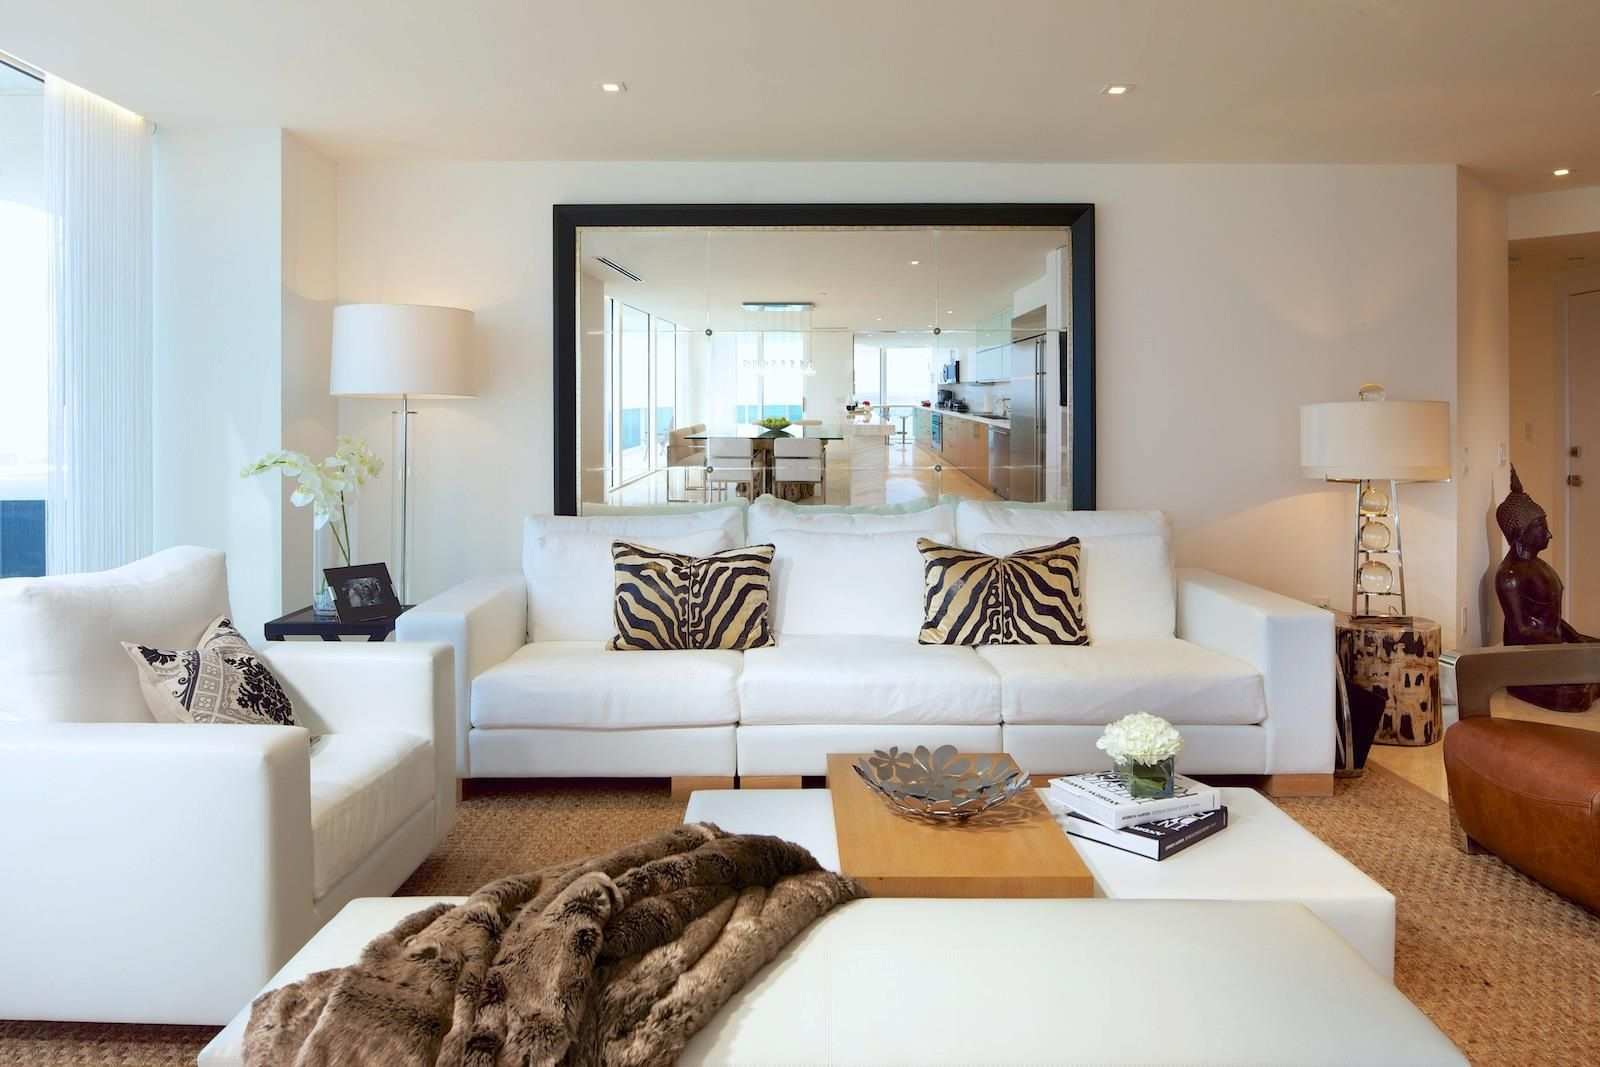 Mirror Behind Sofa Large And Simple Inspiration For New Home Pinterest Living Rooms Room